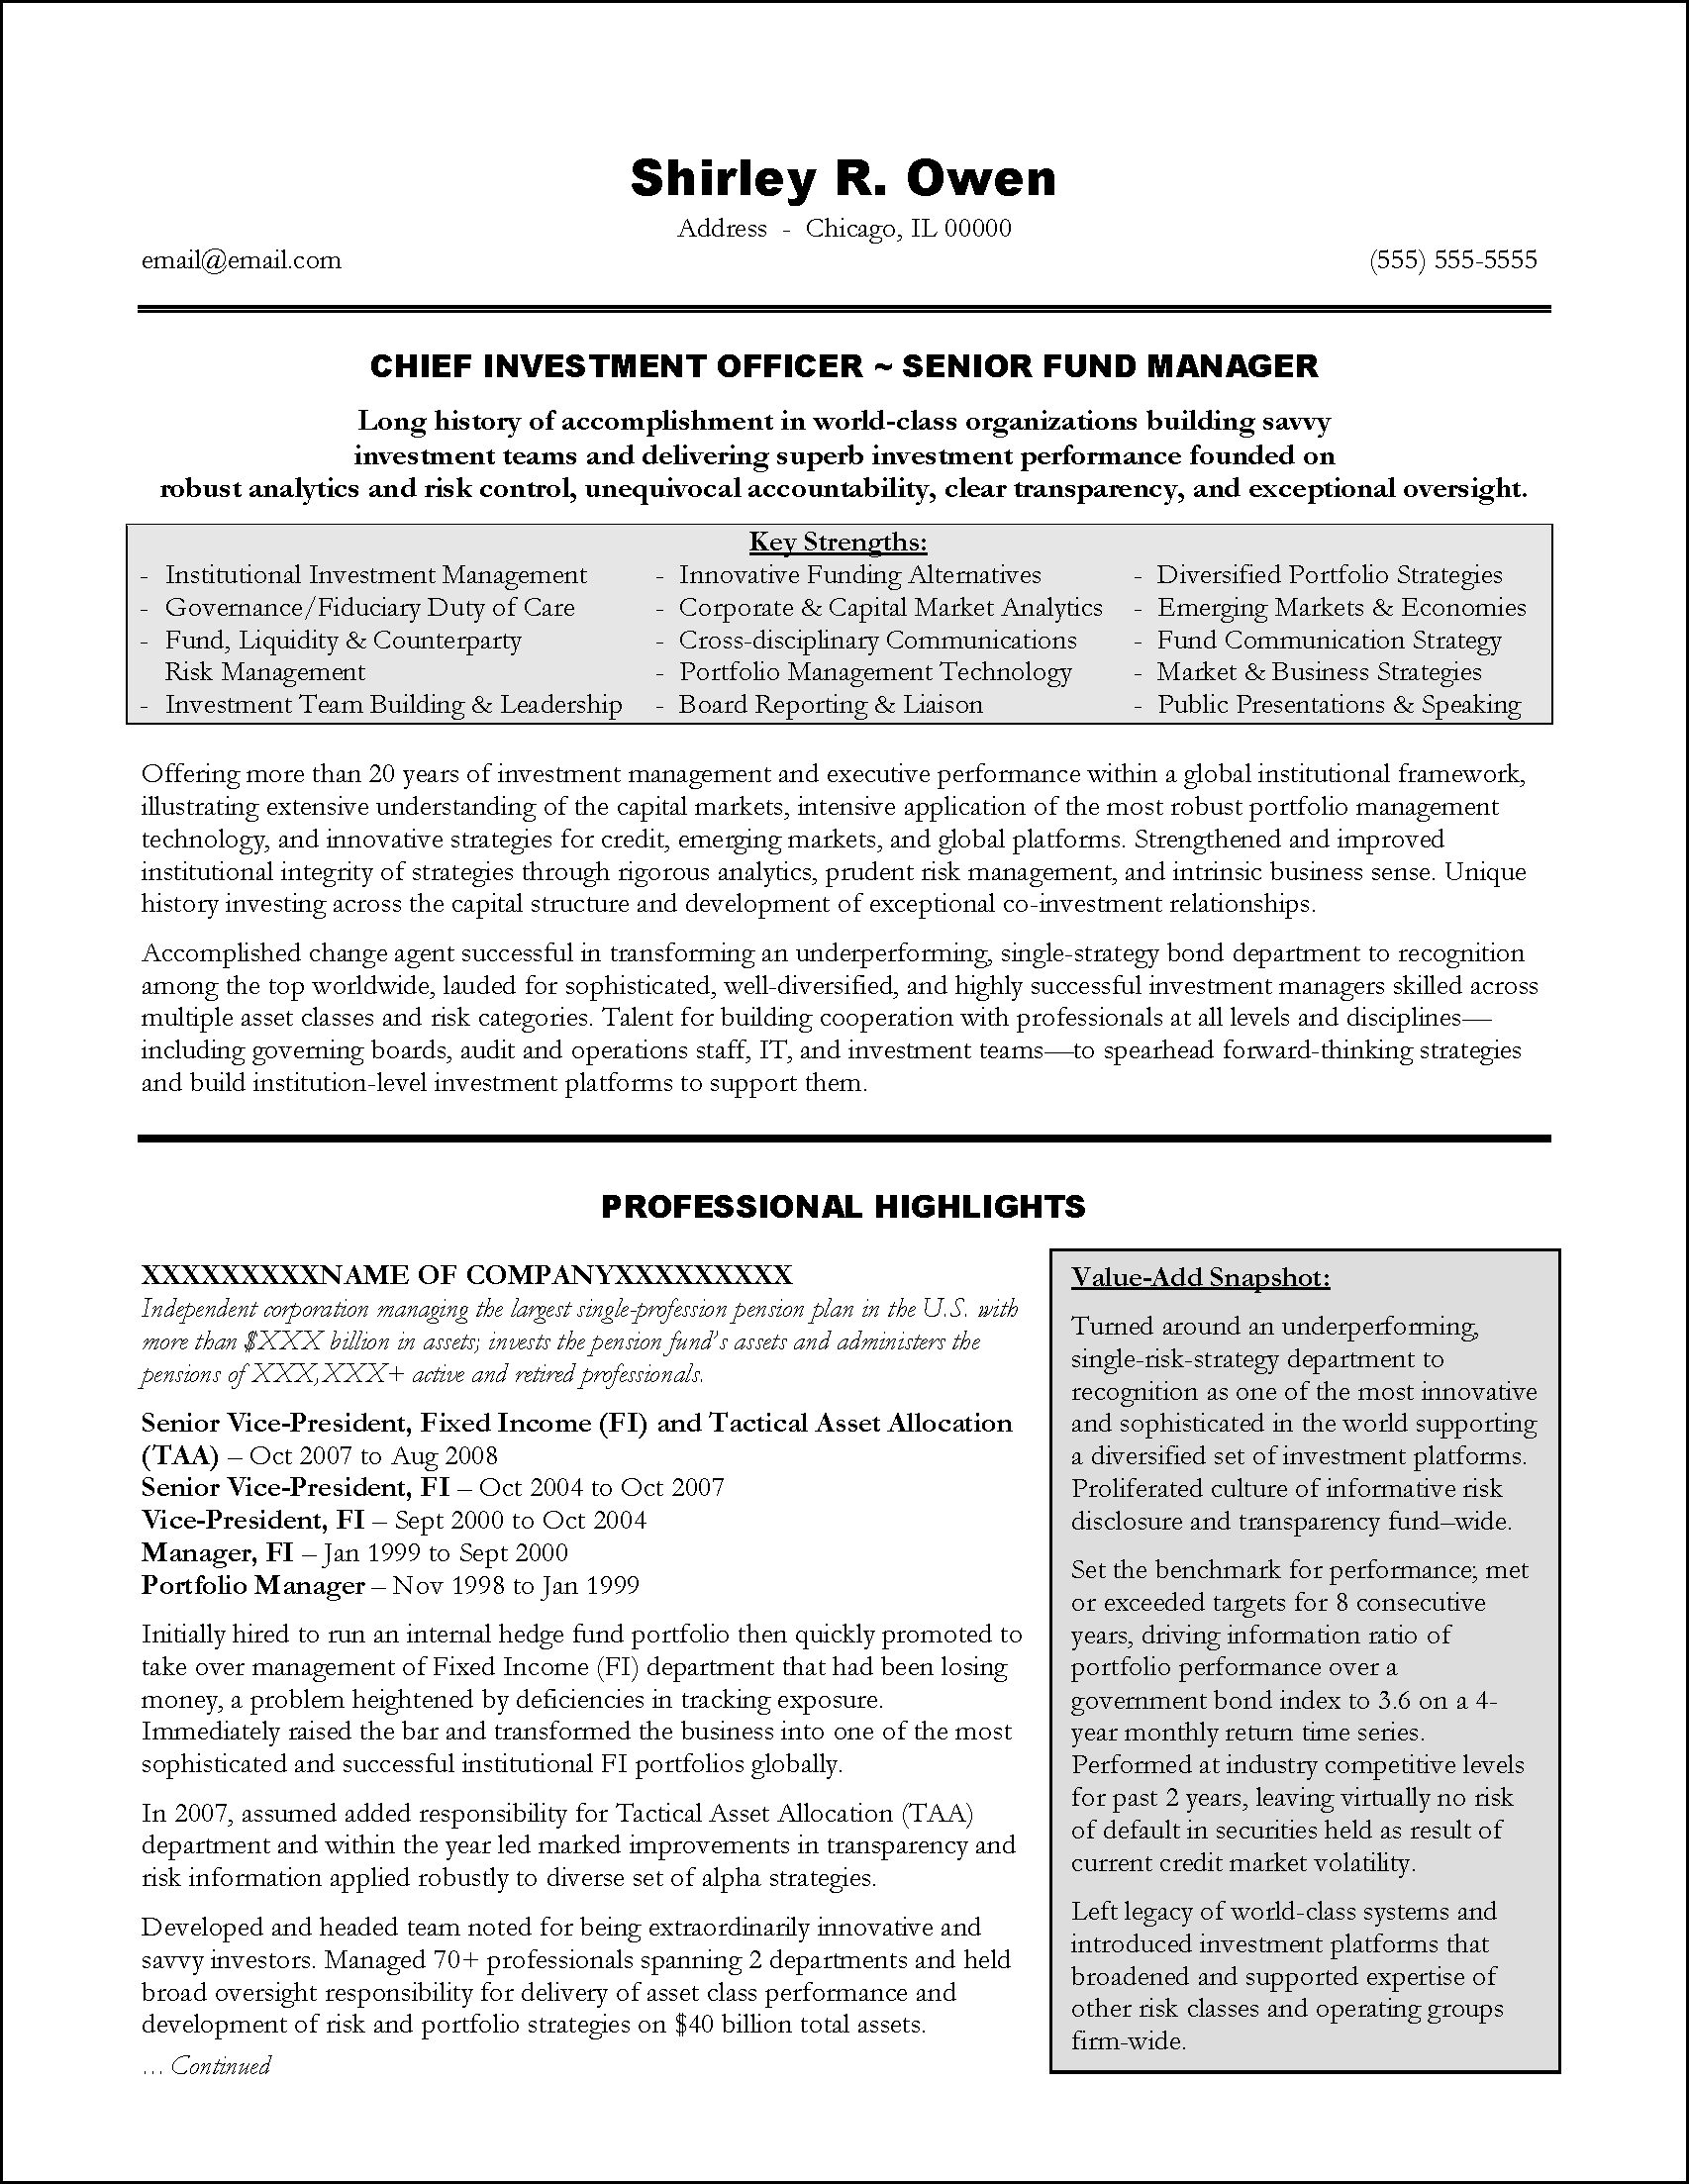 resume Resume Portfolio Examples vip resume1 gray page 1 png investment banking executive resume example